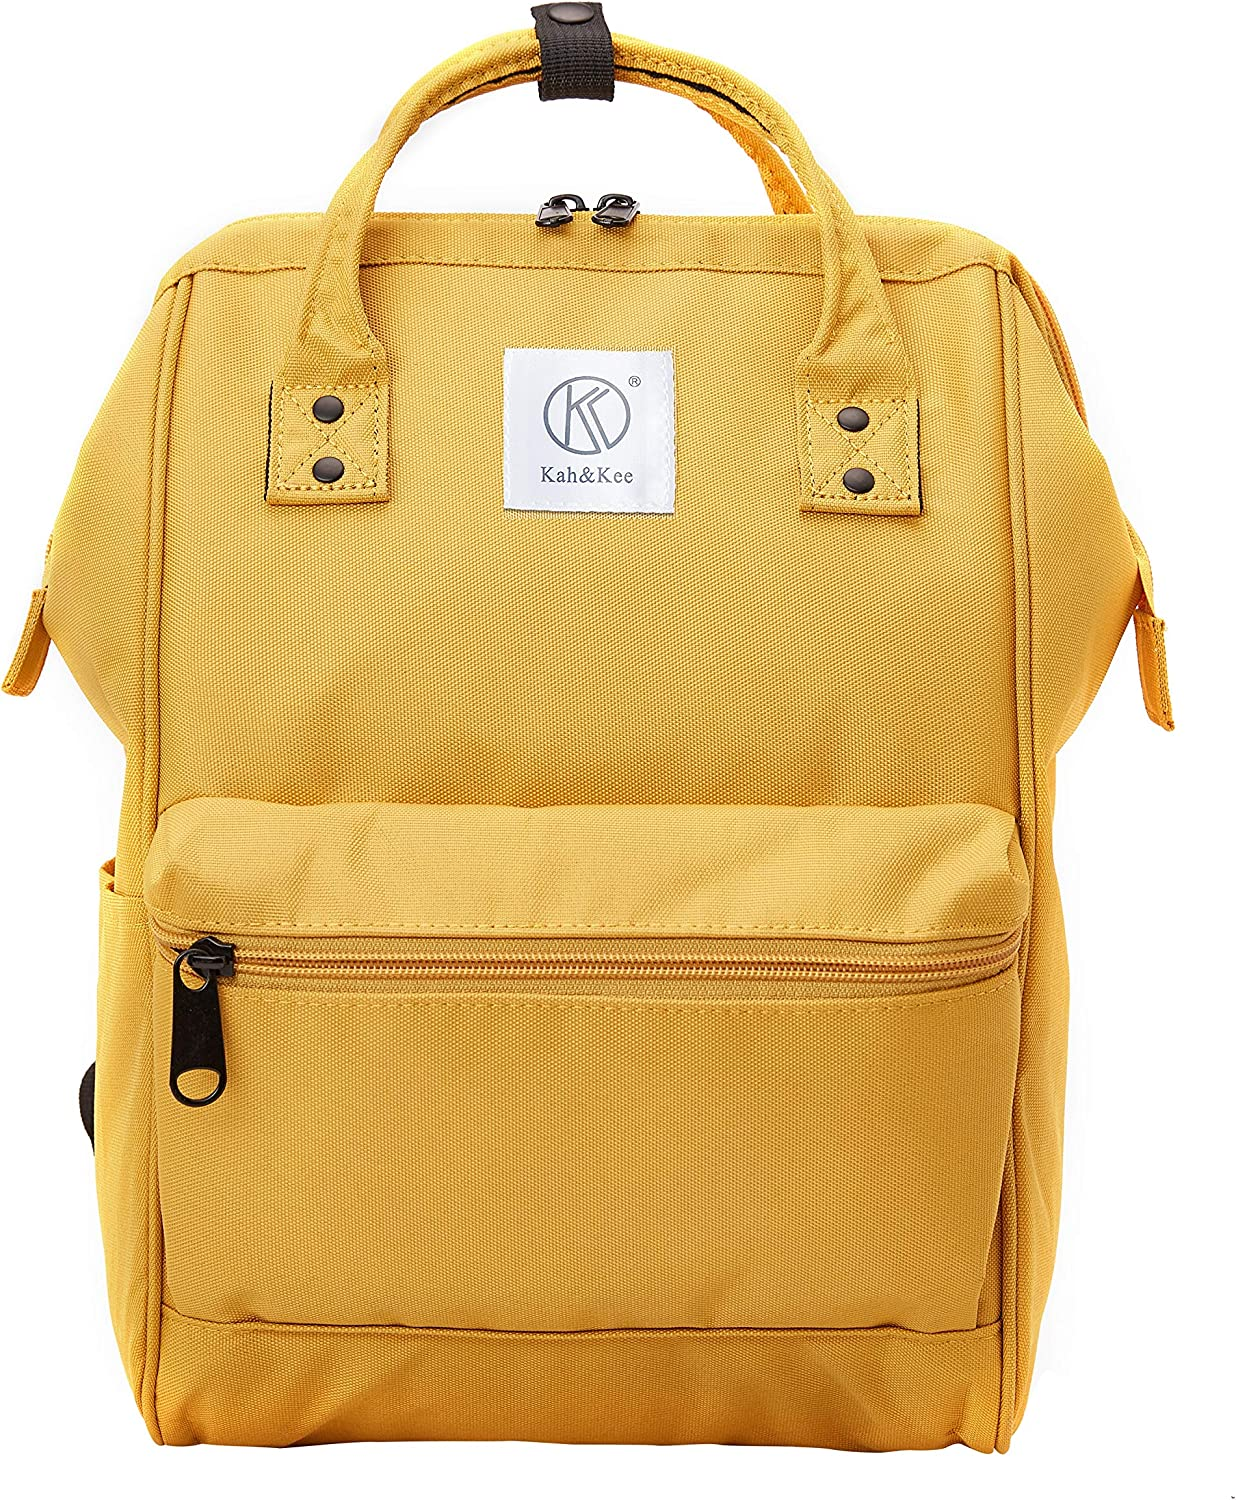 Kah&Kee Polyester Travel Backpack Functional Anti-theft School Laptop for Women Men (Yellow, Small)